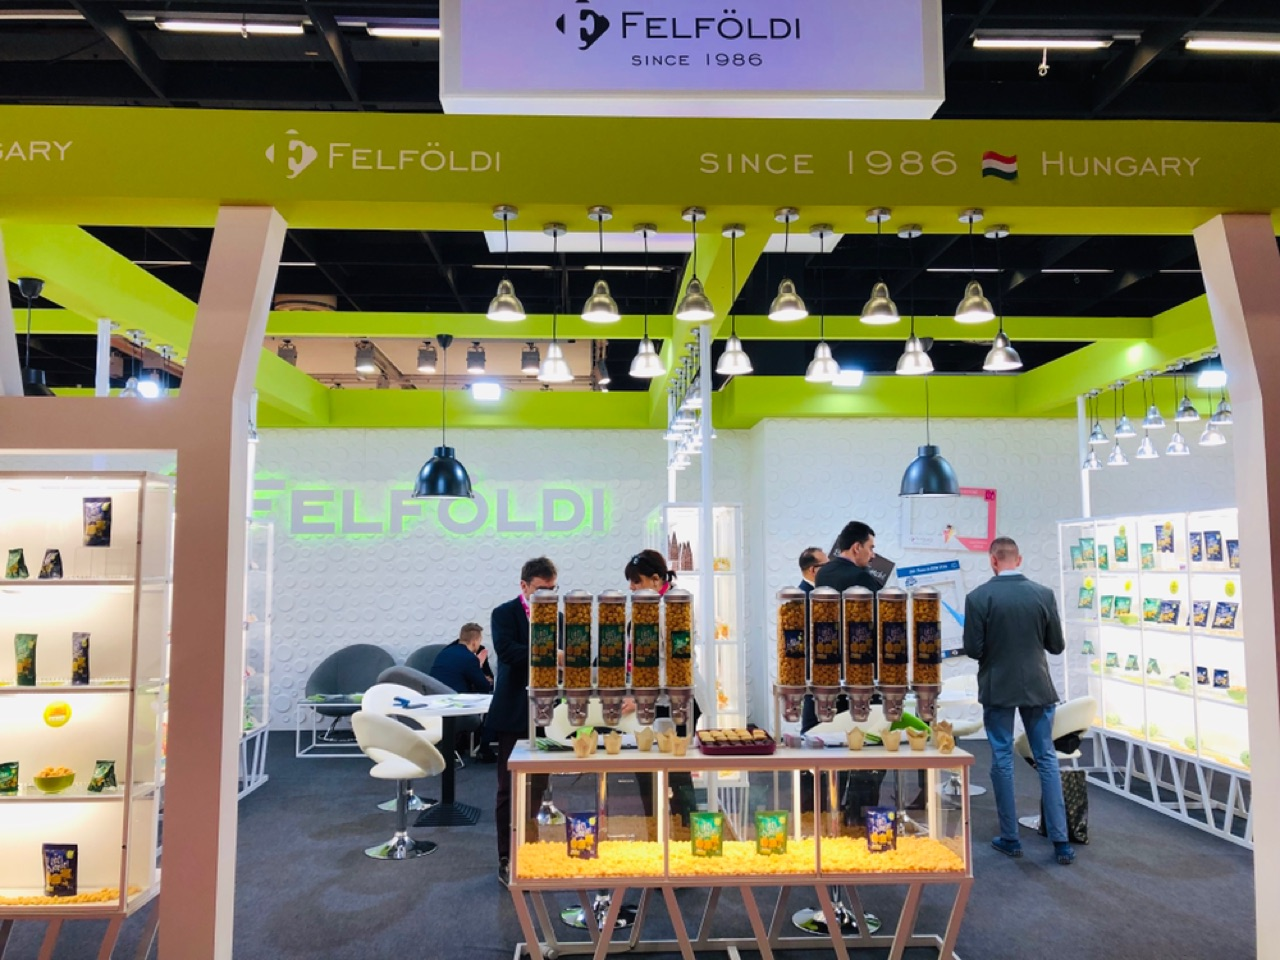 Felföldi's is back to revive the snack industry with new taste and colour